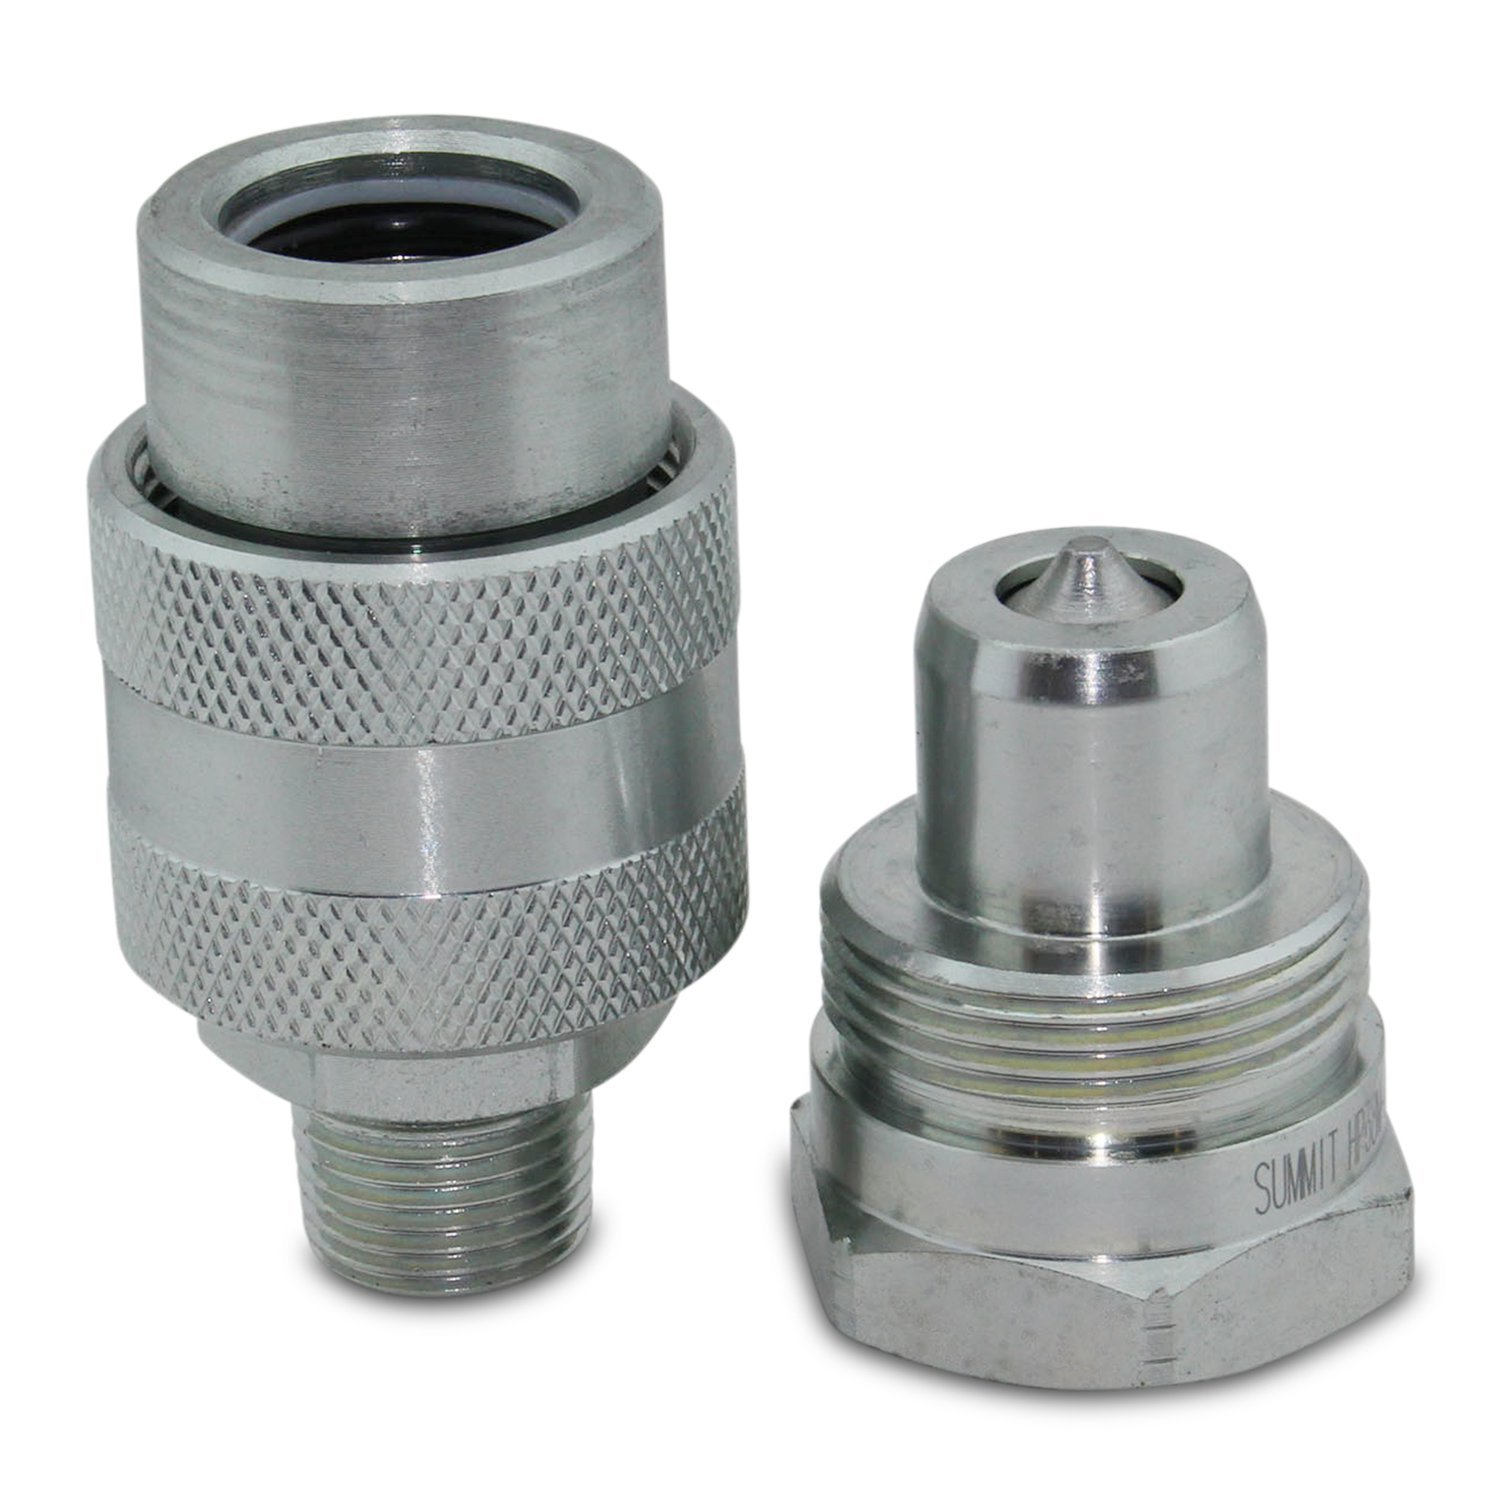 3/8'' 10,000 PSI High Pressure Hydraulic Quick Coupler Set Replaces Enerpac C-604